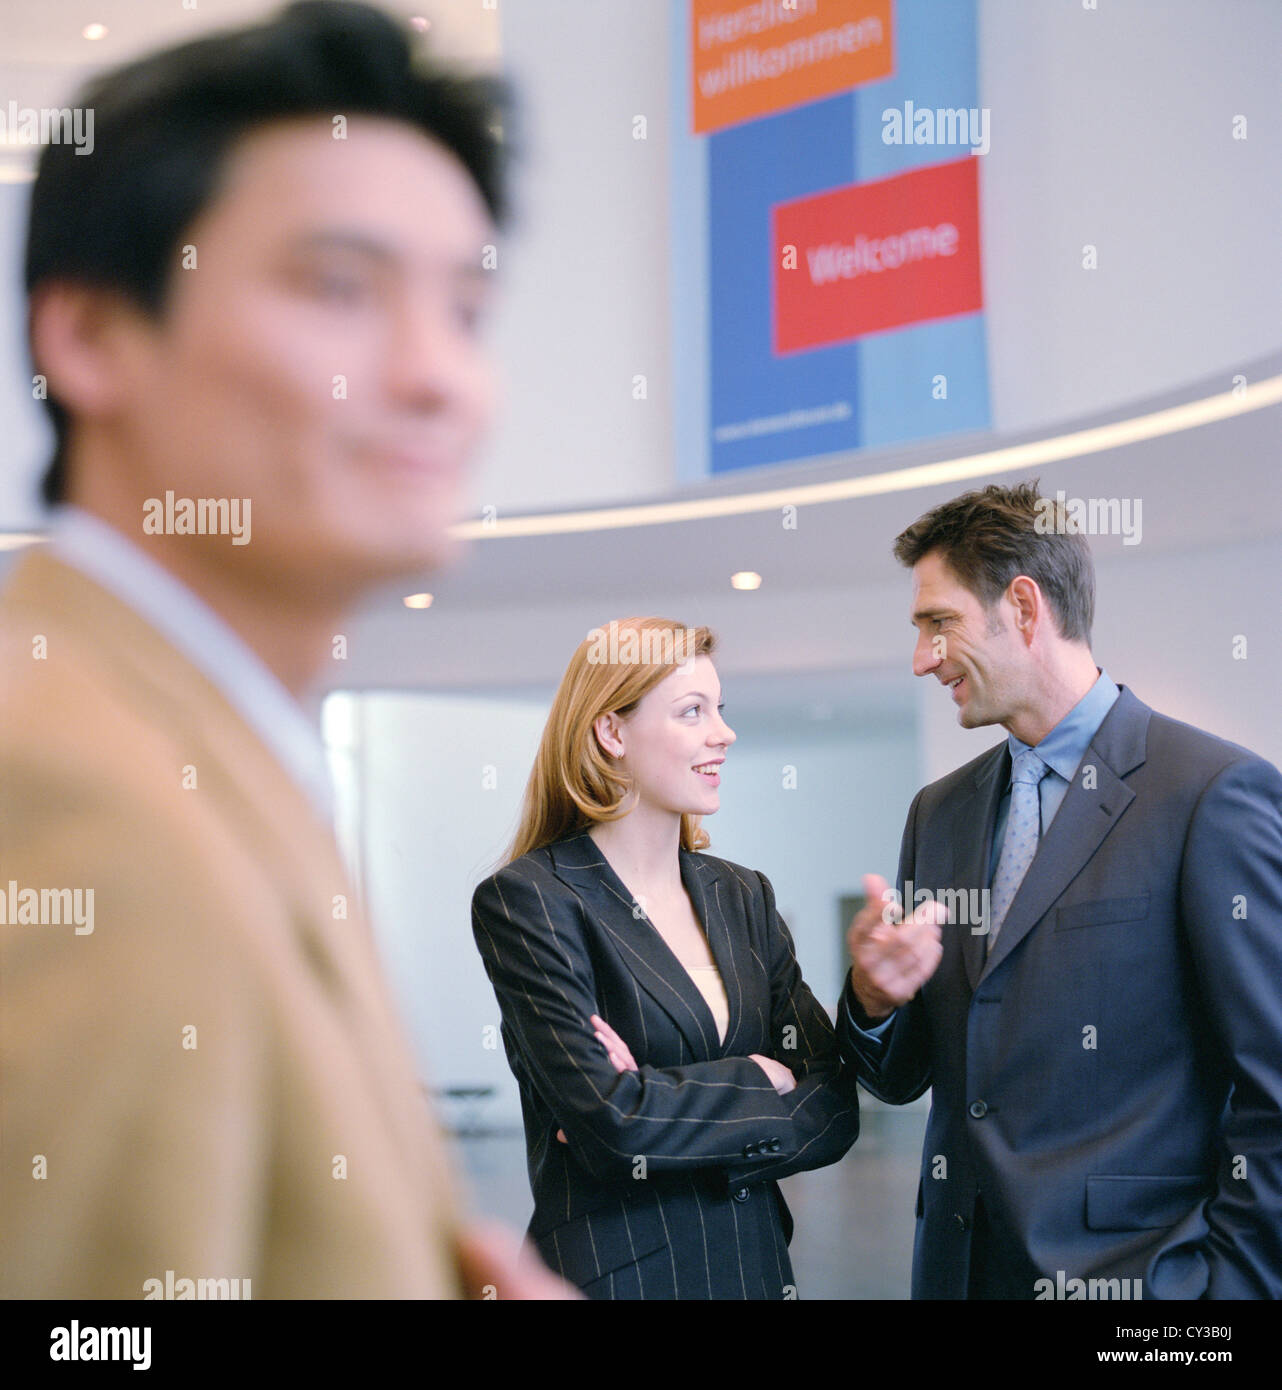 business people man woman cooperation manager License free except ads and outdoor billboards - Stock Image